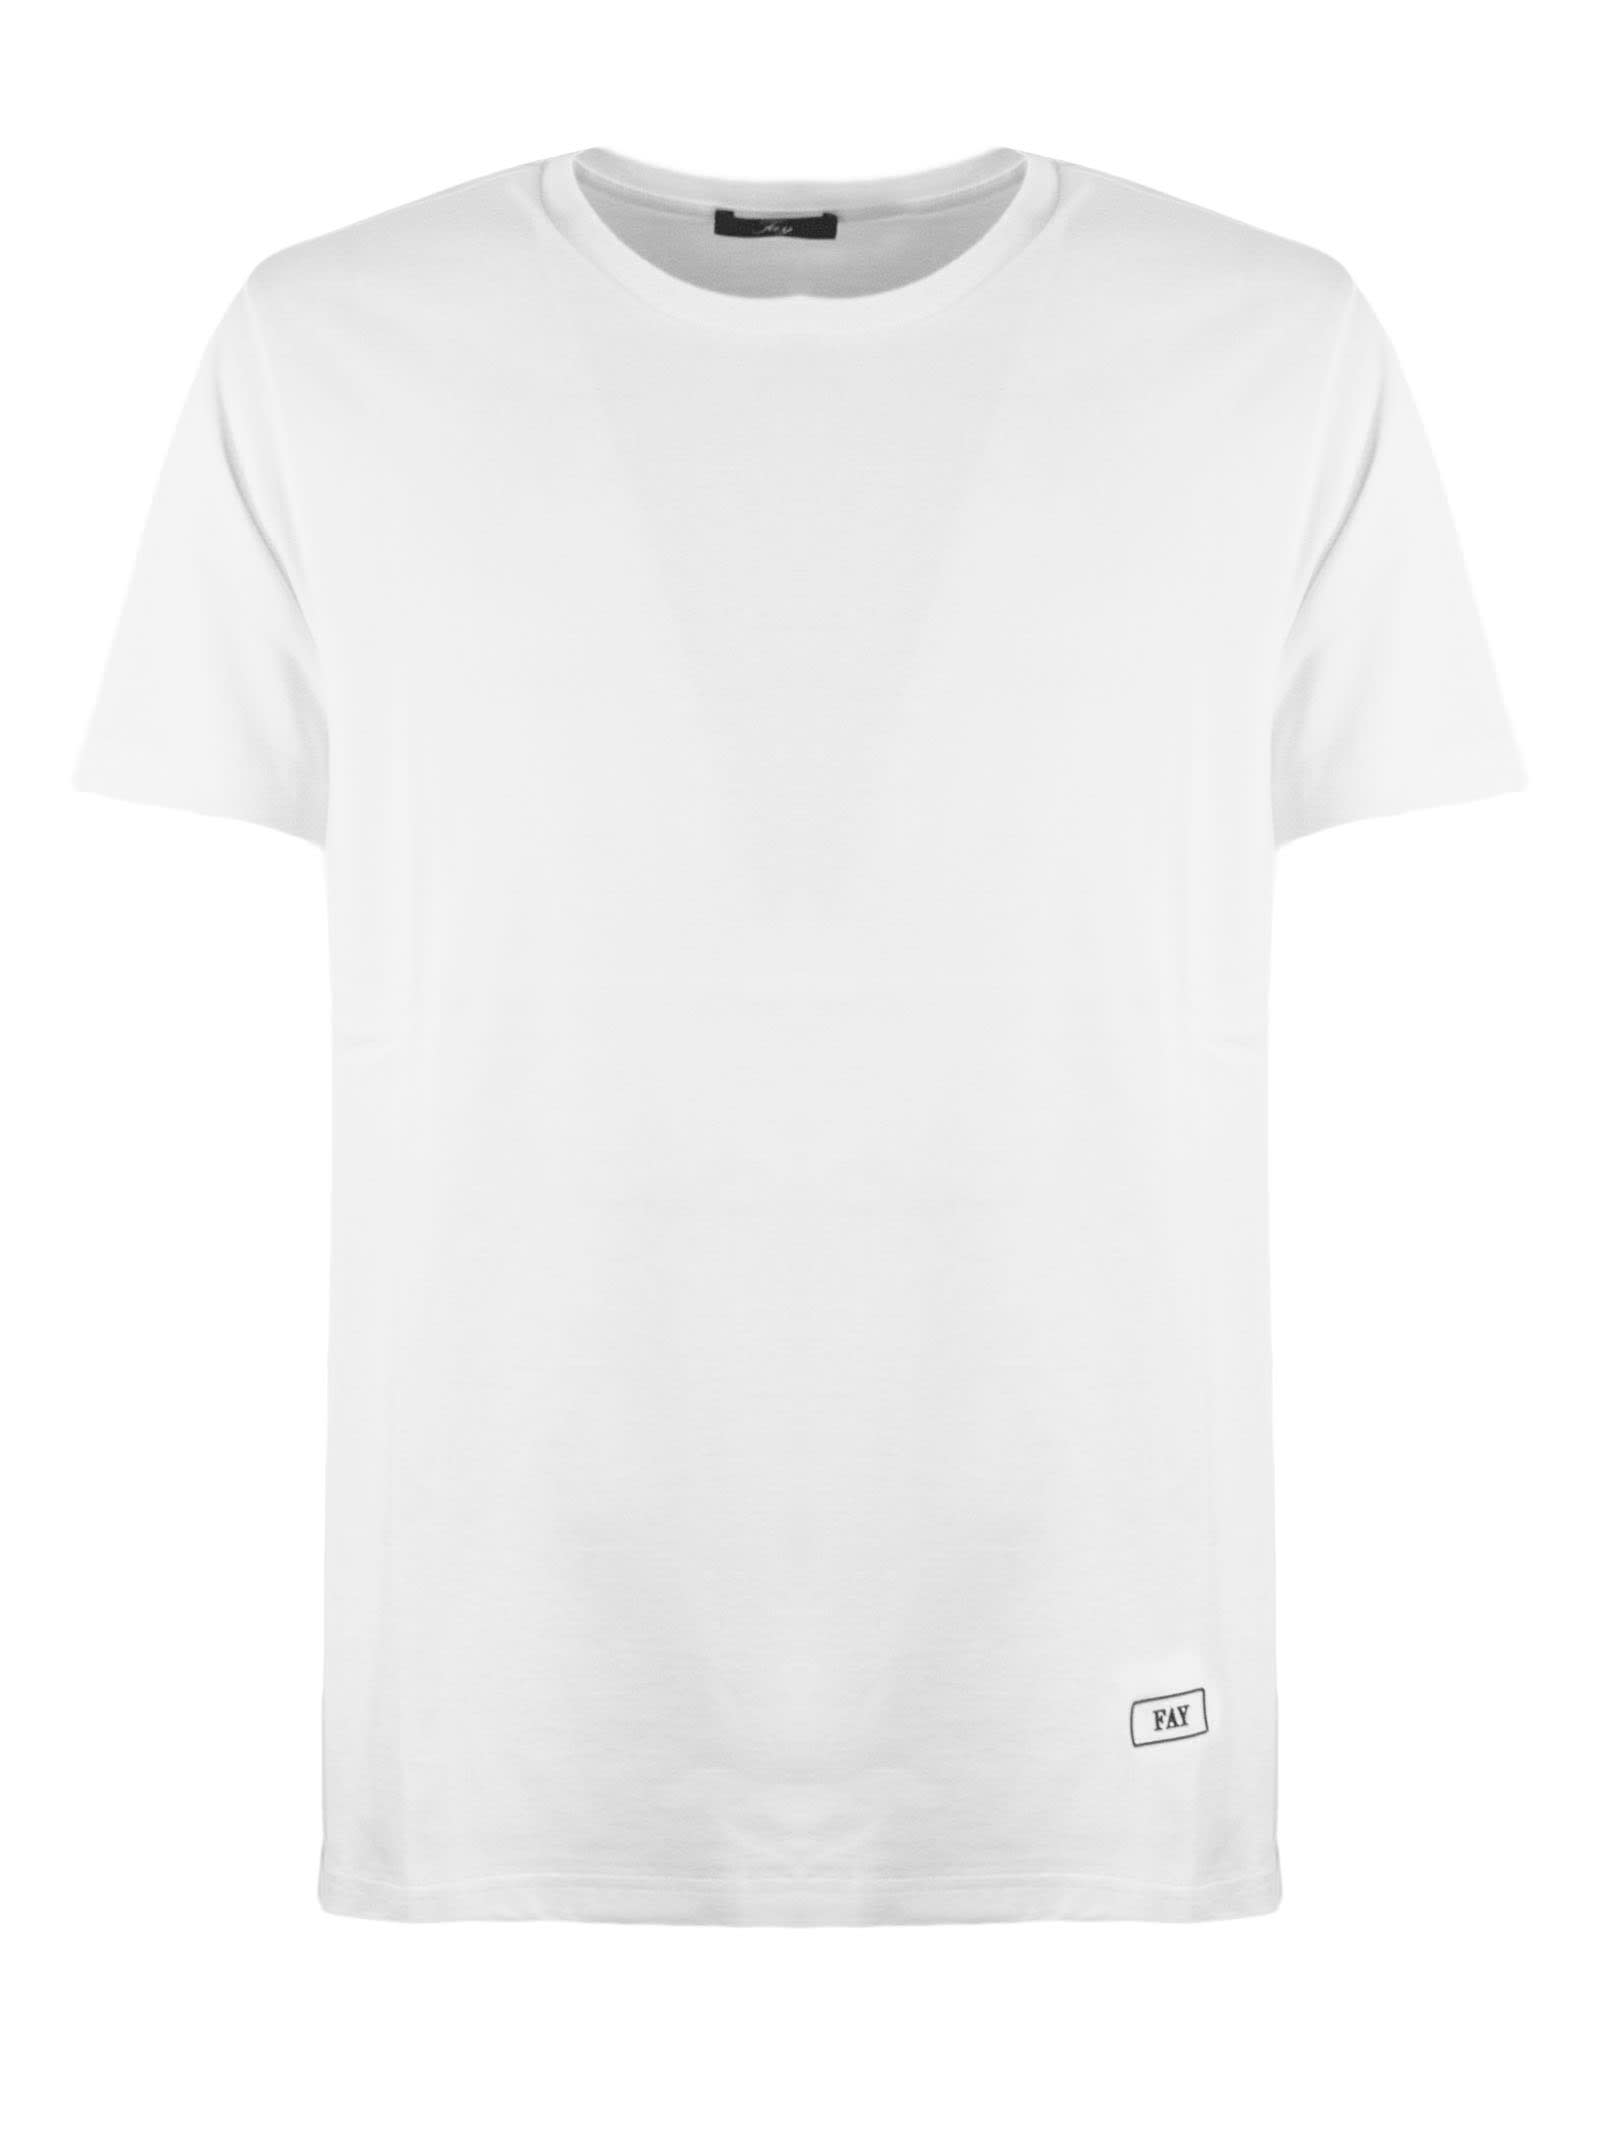 Fay White Cotton T-shirt